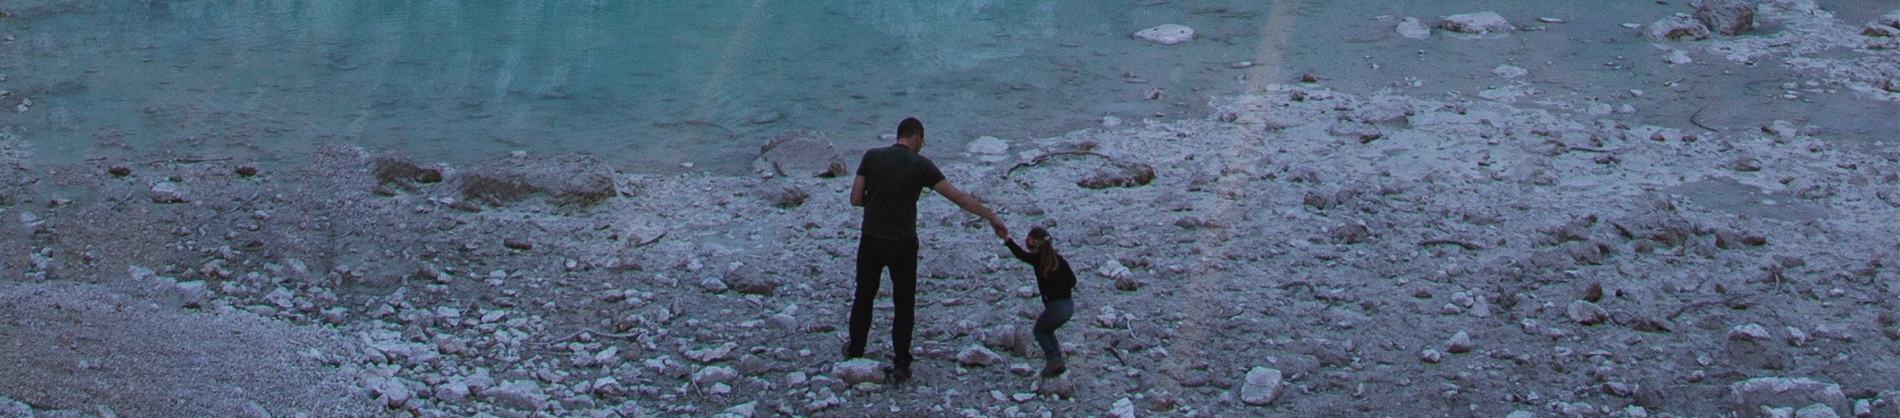 A father and son on the beach. The child is holding the fathers hand and jumping over rocks